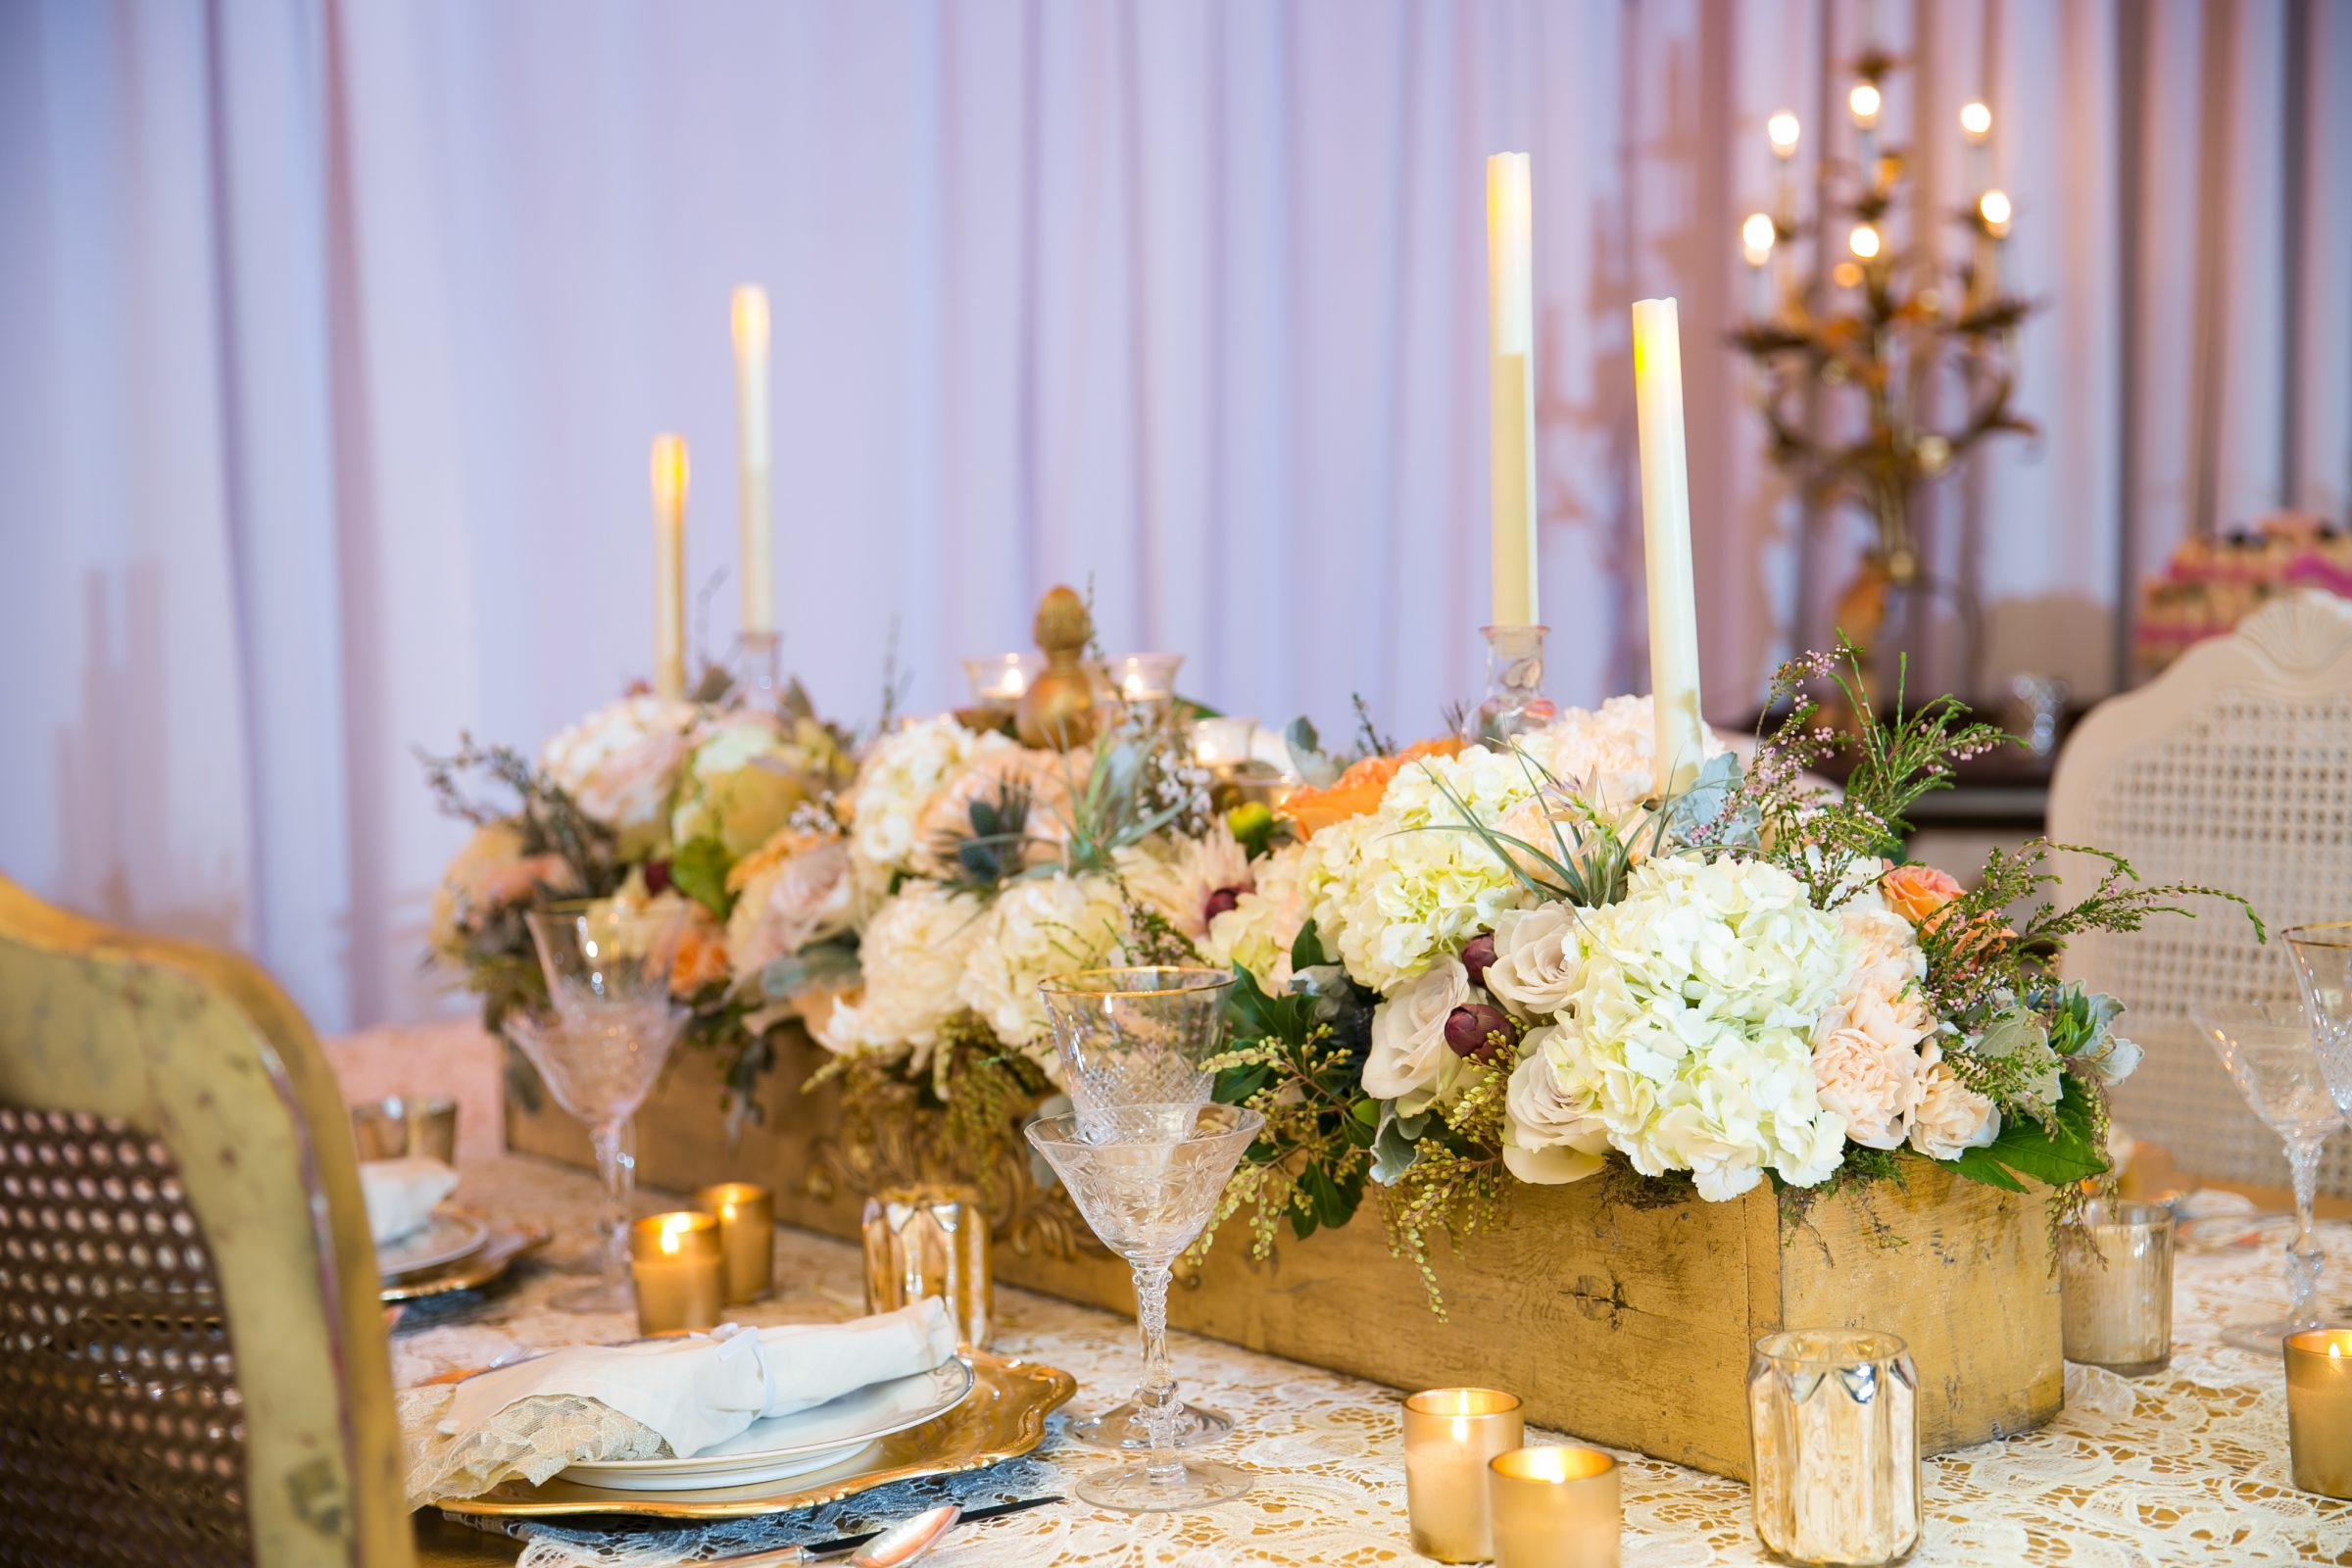 Rustic wood wedding centerpiece with greenery and white floral inside